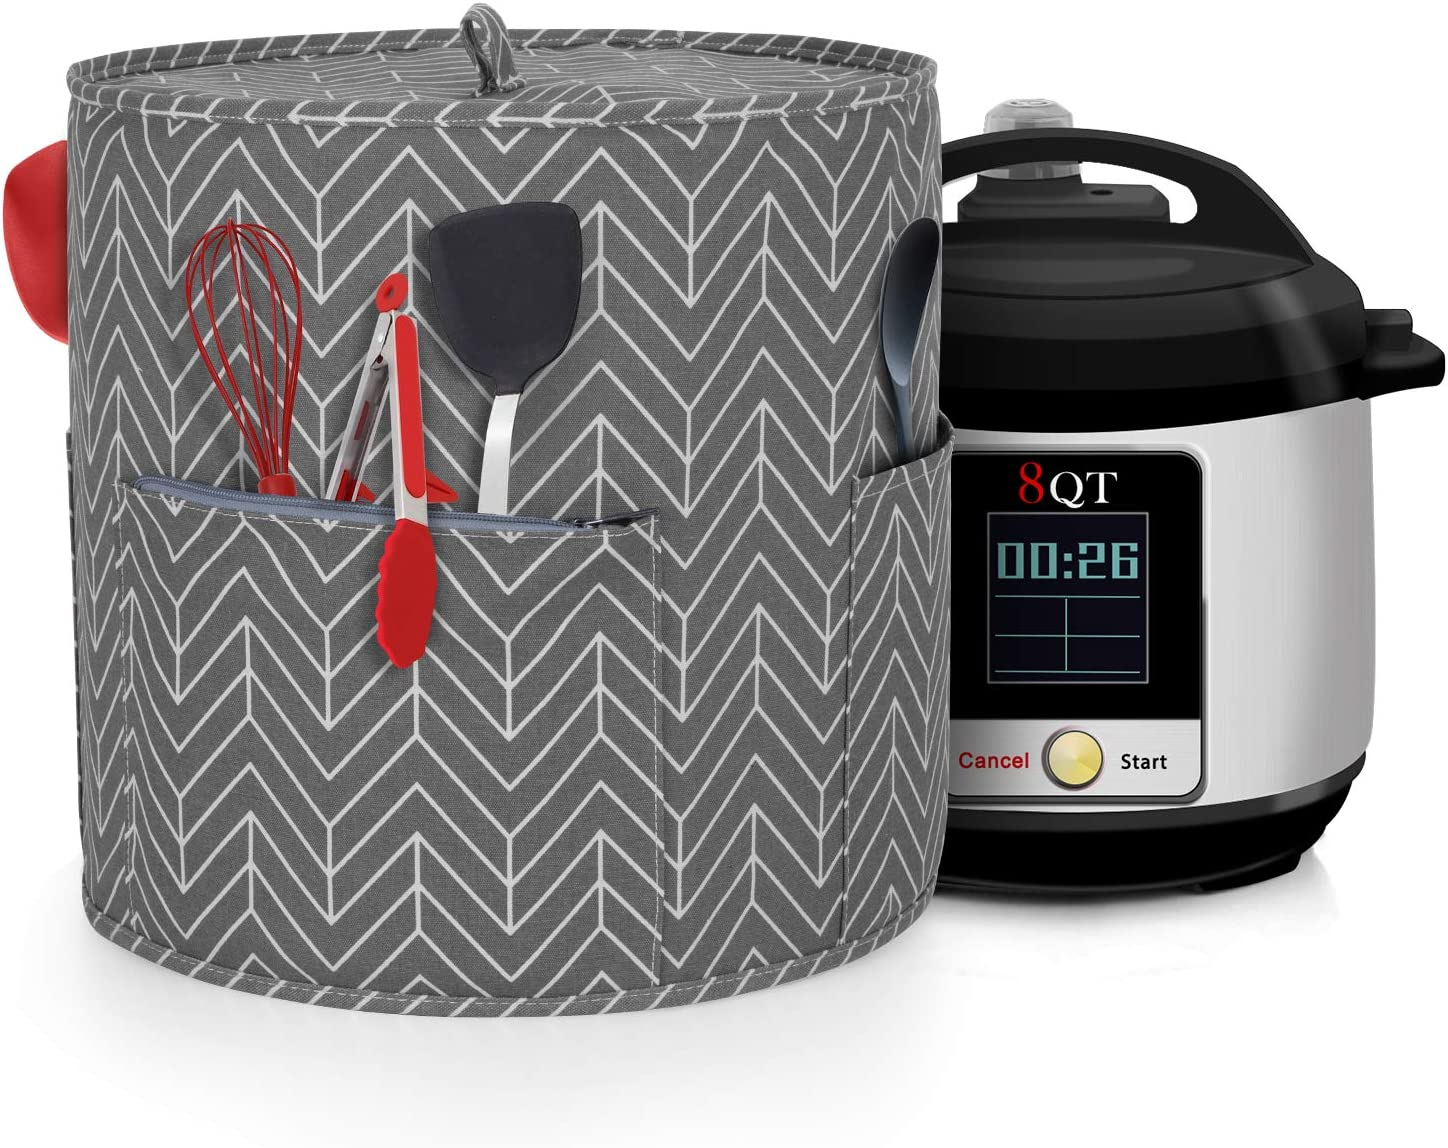 Yarwo Dust Cover Compatible with 8 qt Instant Pot, Cotton Canvas Cover with Pockets and Top Handle for 8 Quart Pressure Cooker and Kitchen Tools, Chevron